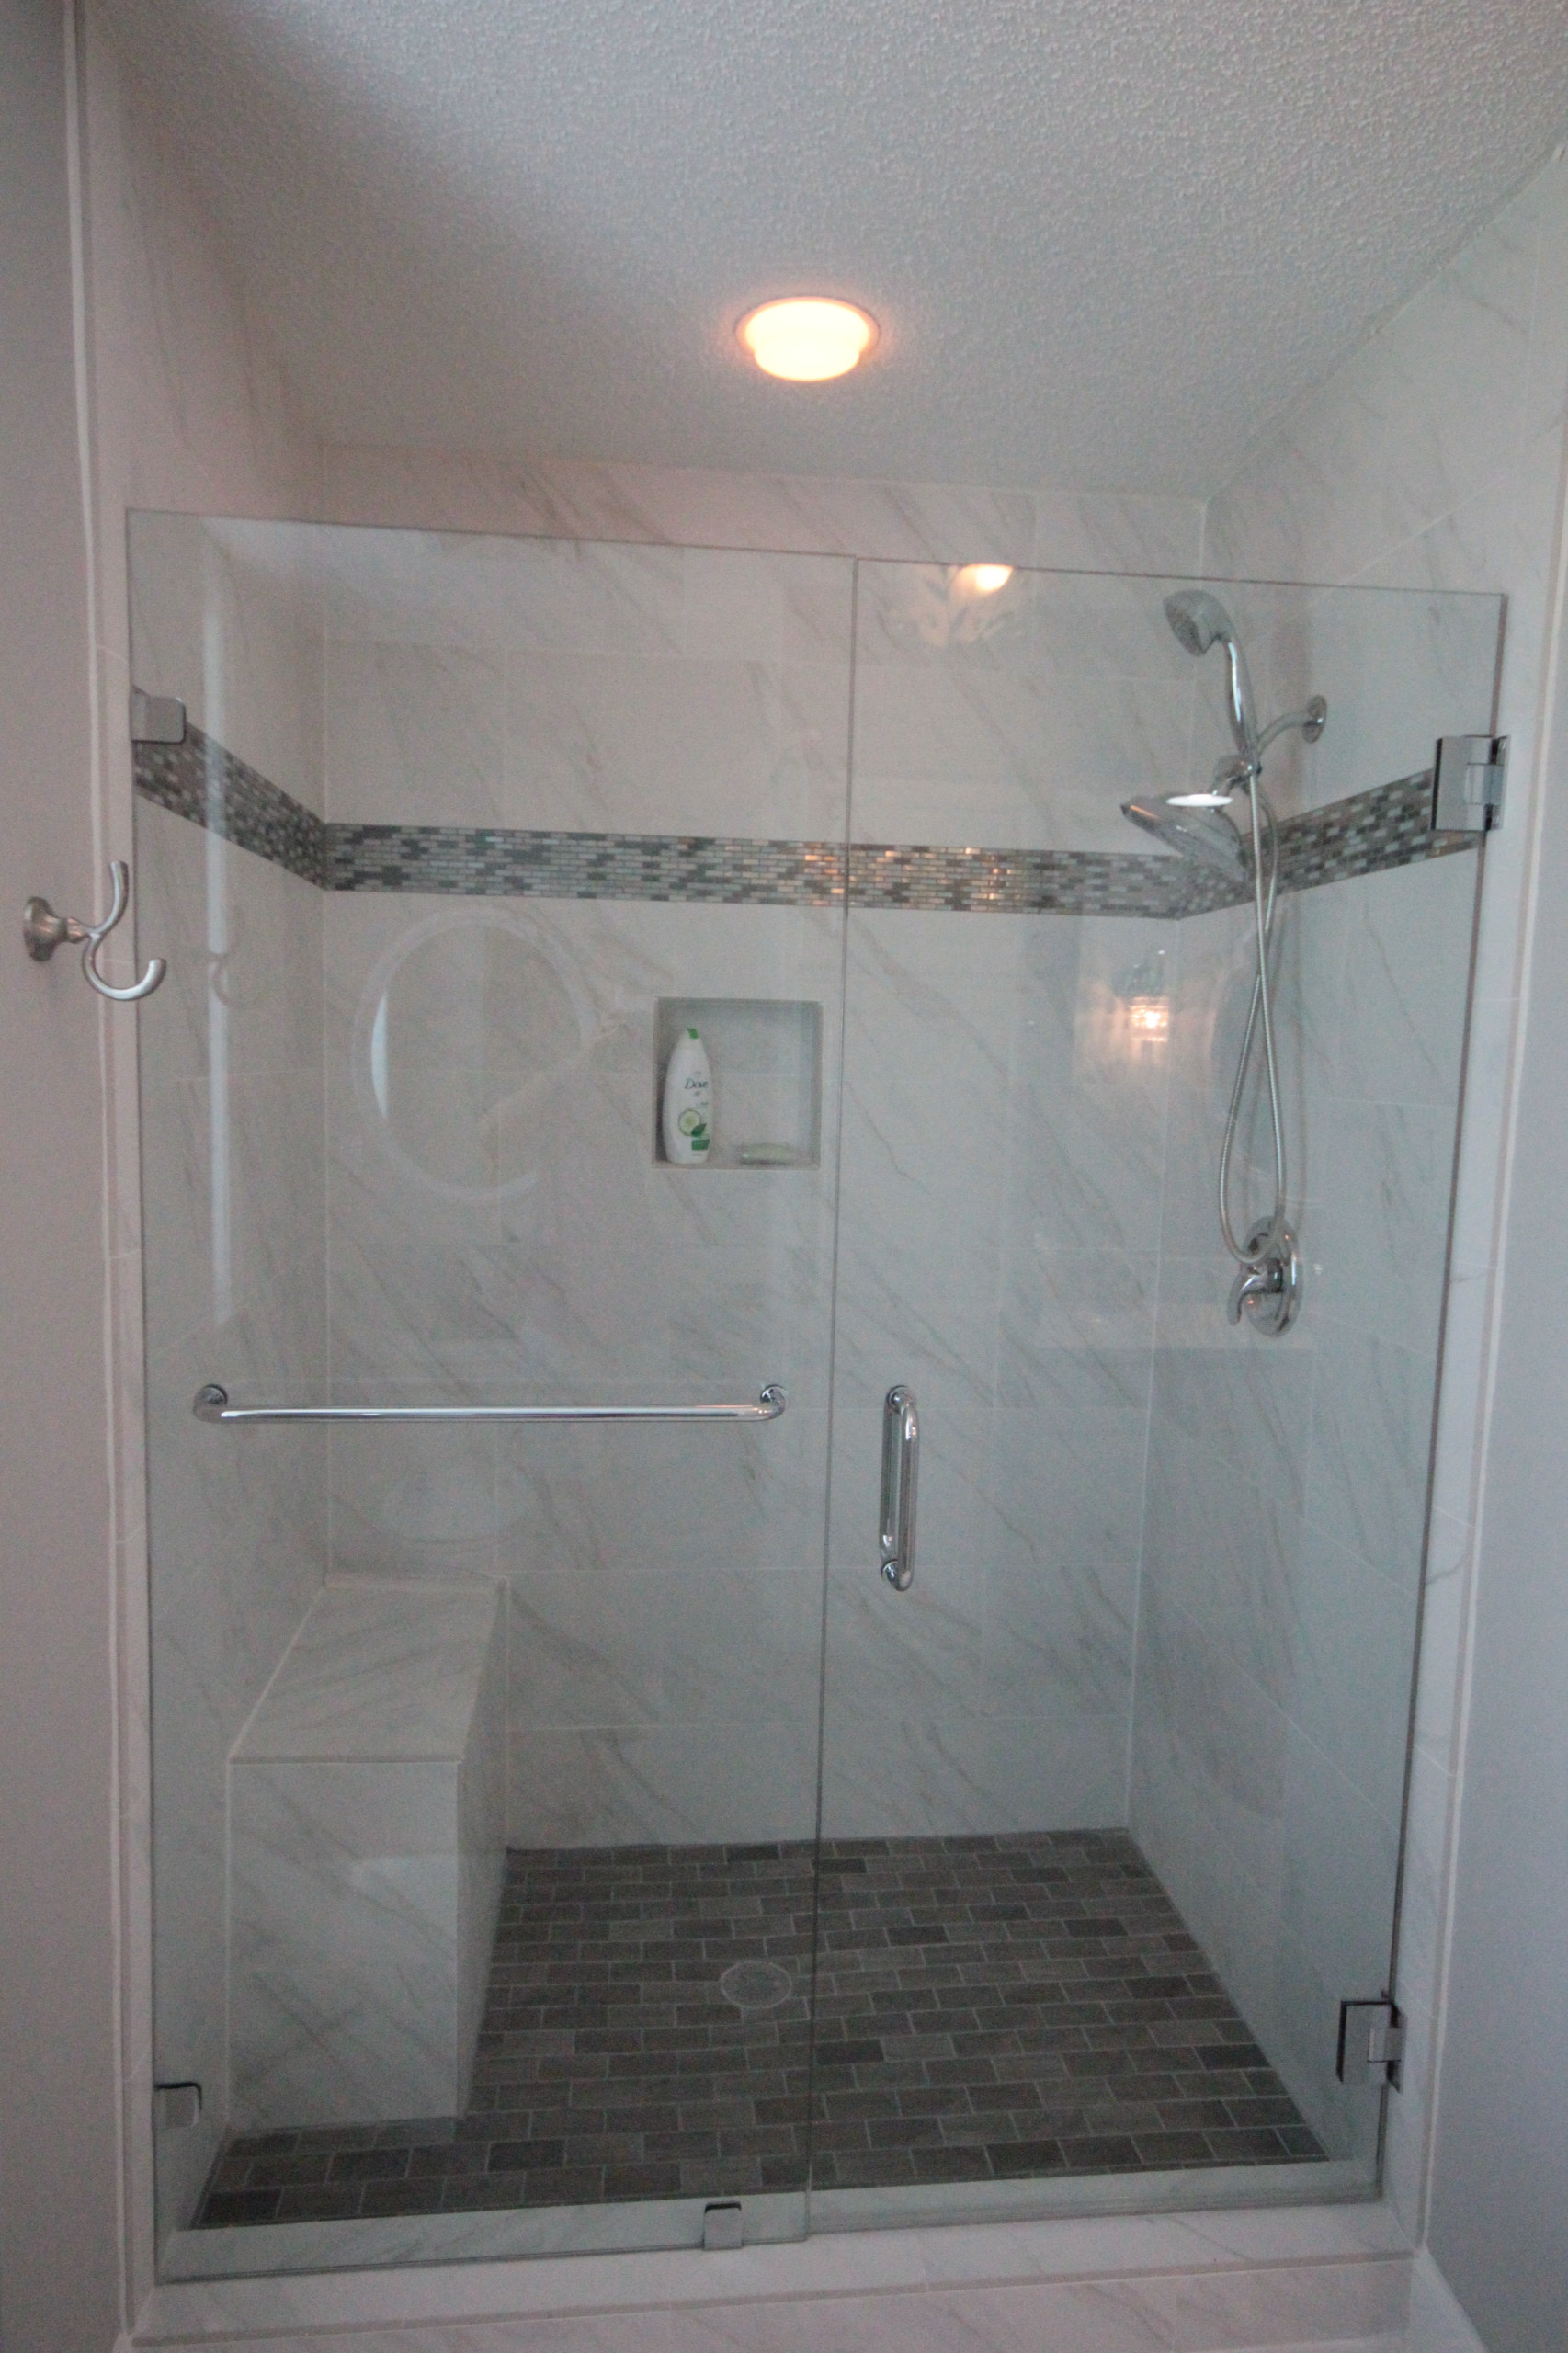 New shower with marble-look tile.